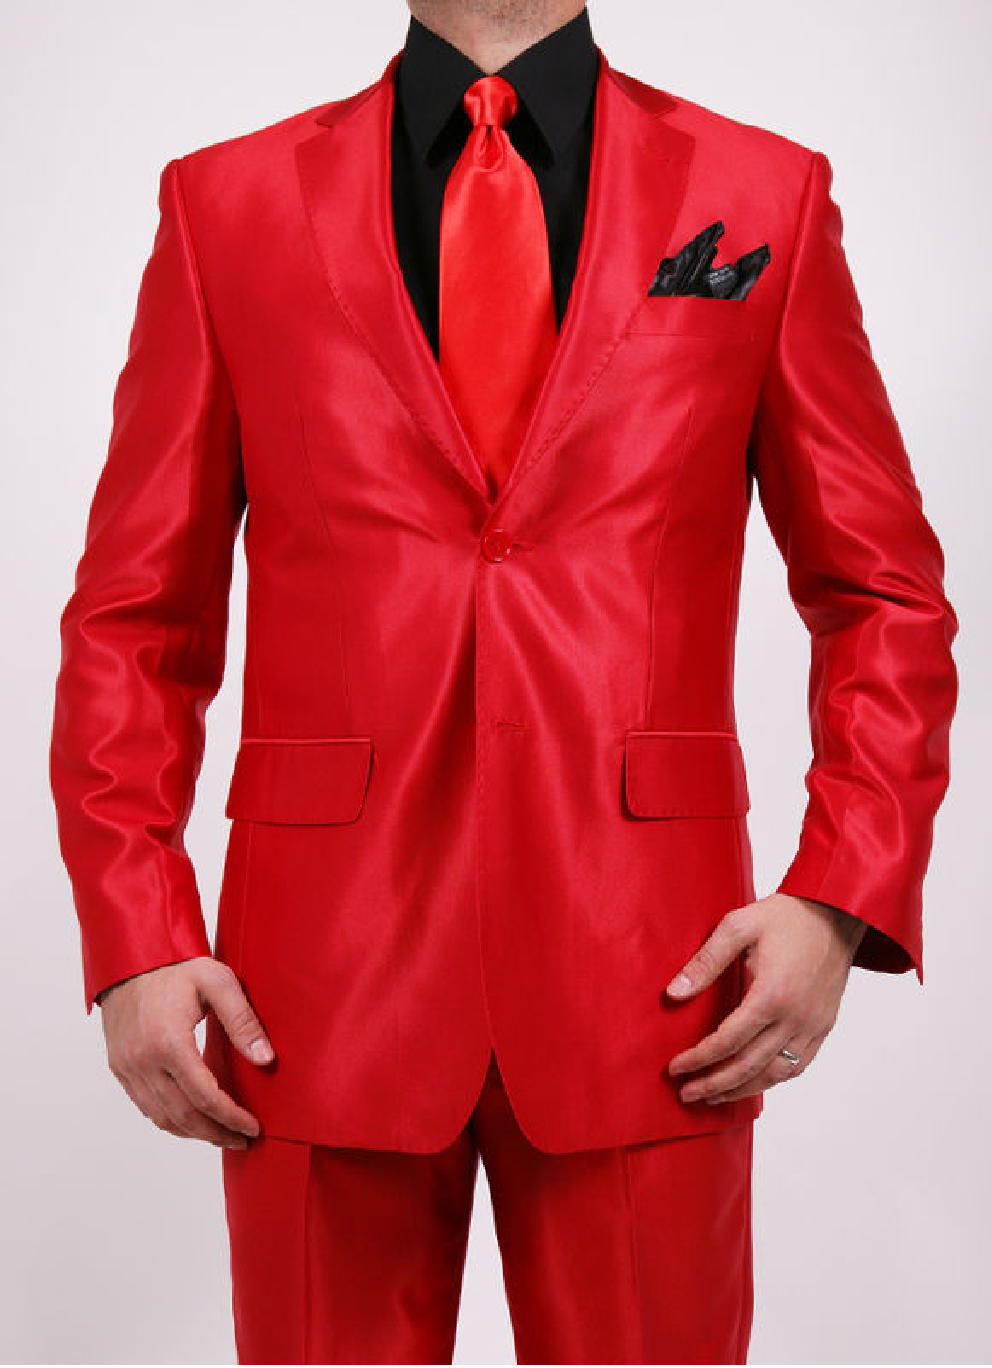 Red Suits For Men | Red-is-Vibrant | Pinterest | Vests, Red ties ...